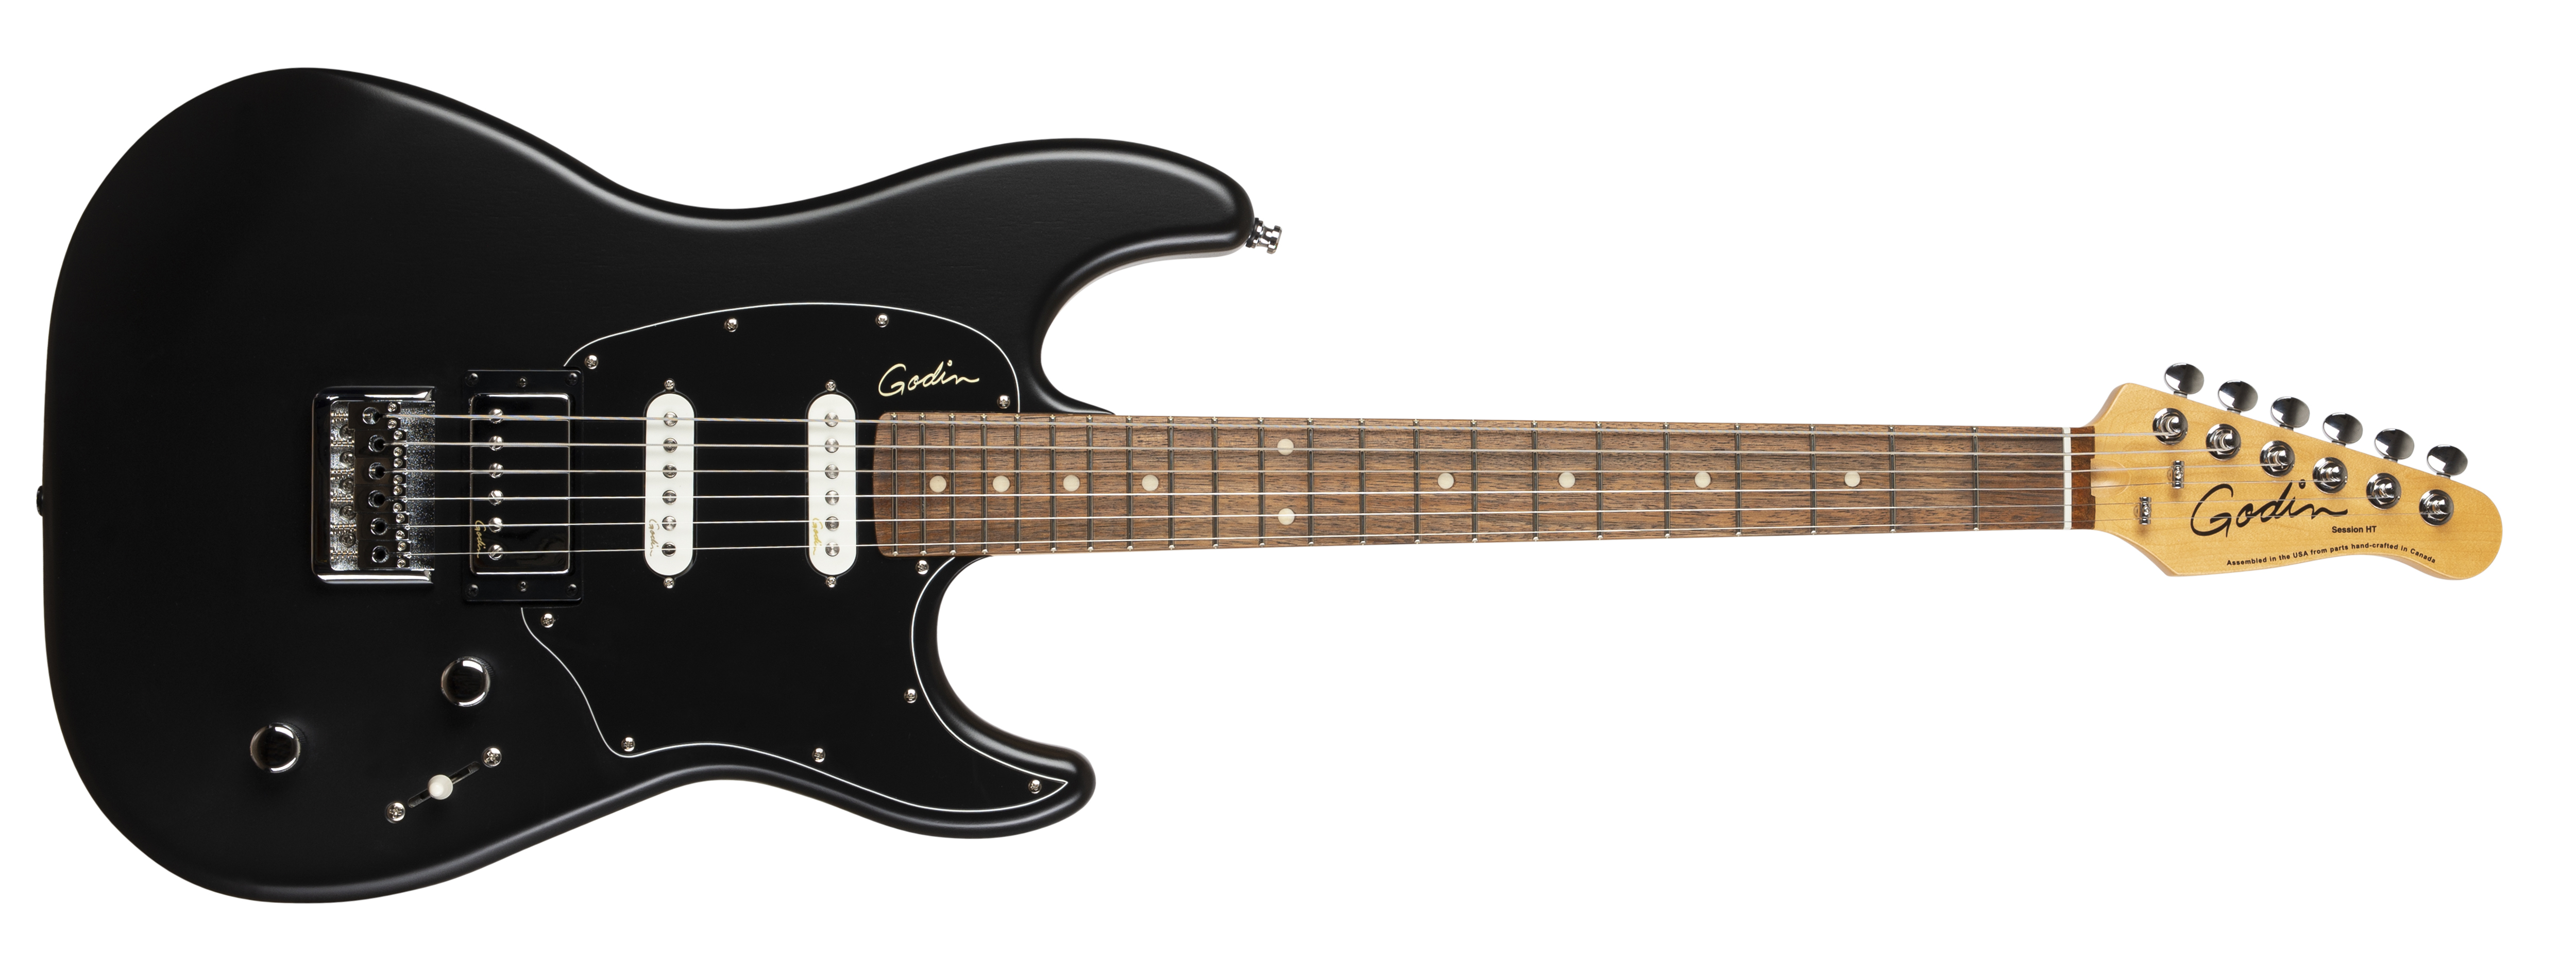 New Godin Guitars Session HT model announced | MusicRadar